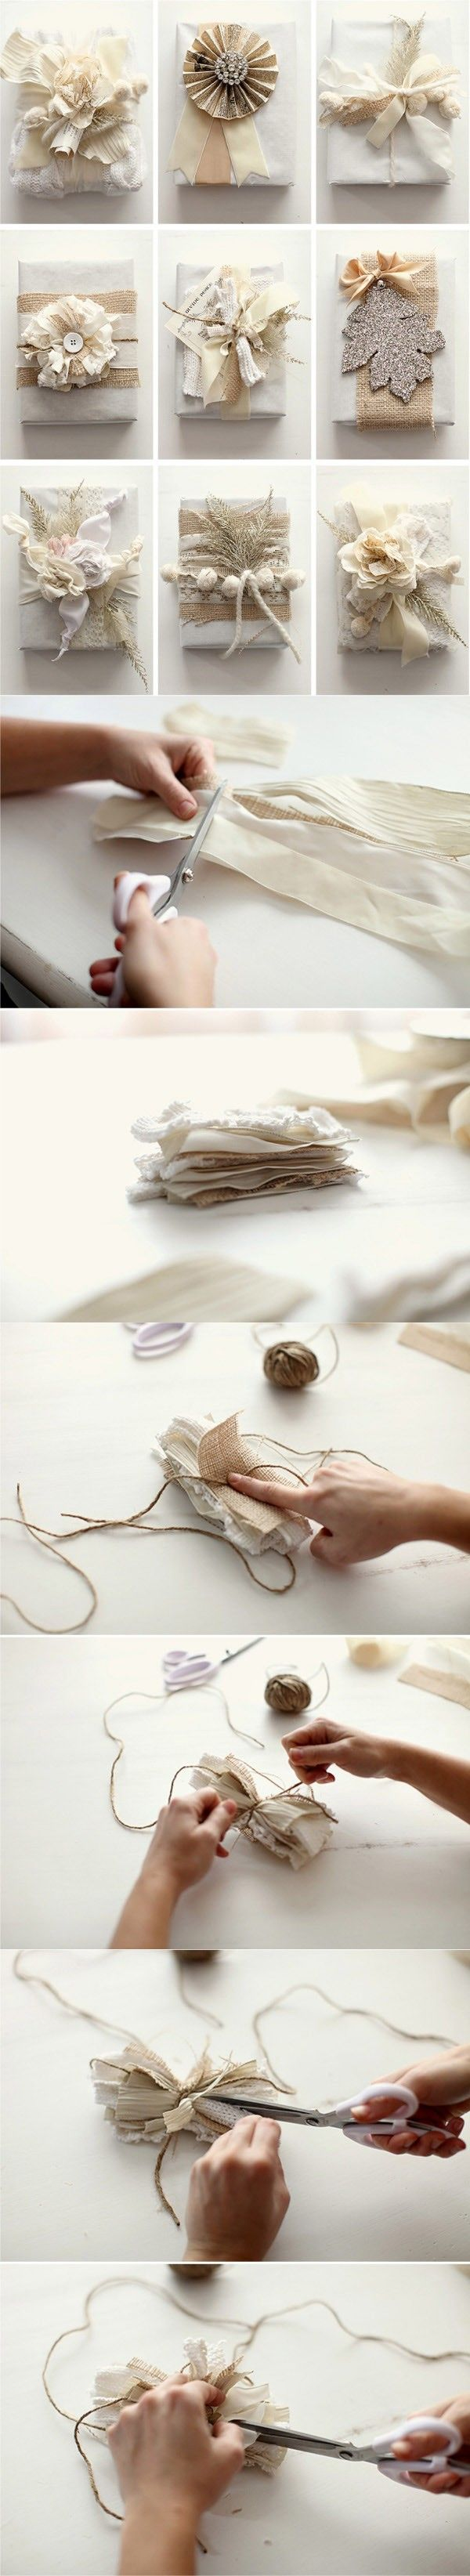 http://www.squidoo.com/how-to-tie-different-types-of-decorative-bows-gift-wrap-packaging